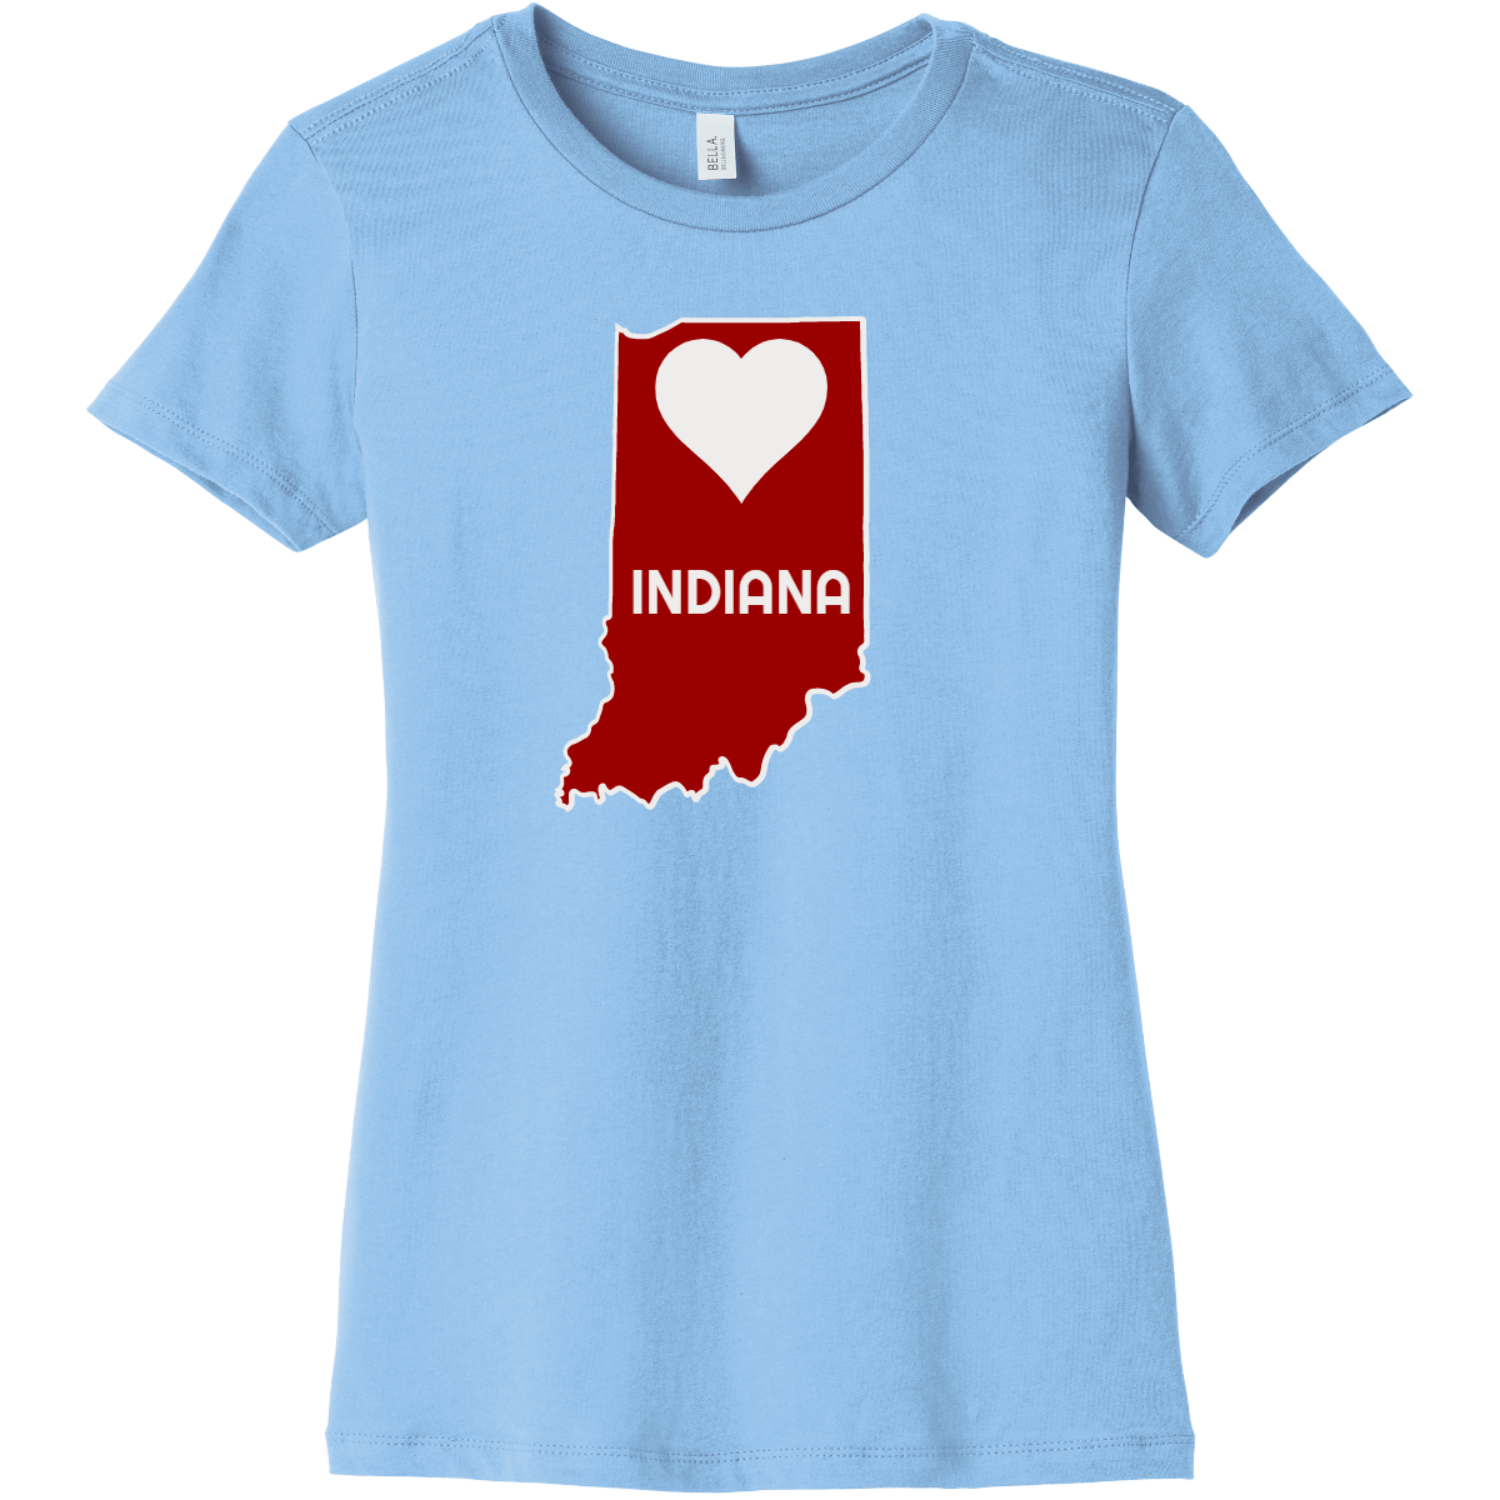 Indiana Heart State T Shirt For Women Baby Blue Bella Canvas 6004 Ladies The Favorite Tee